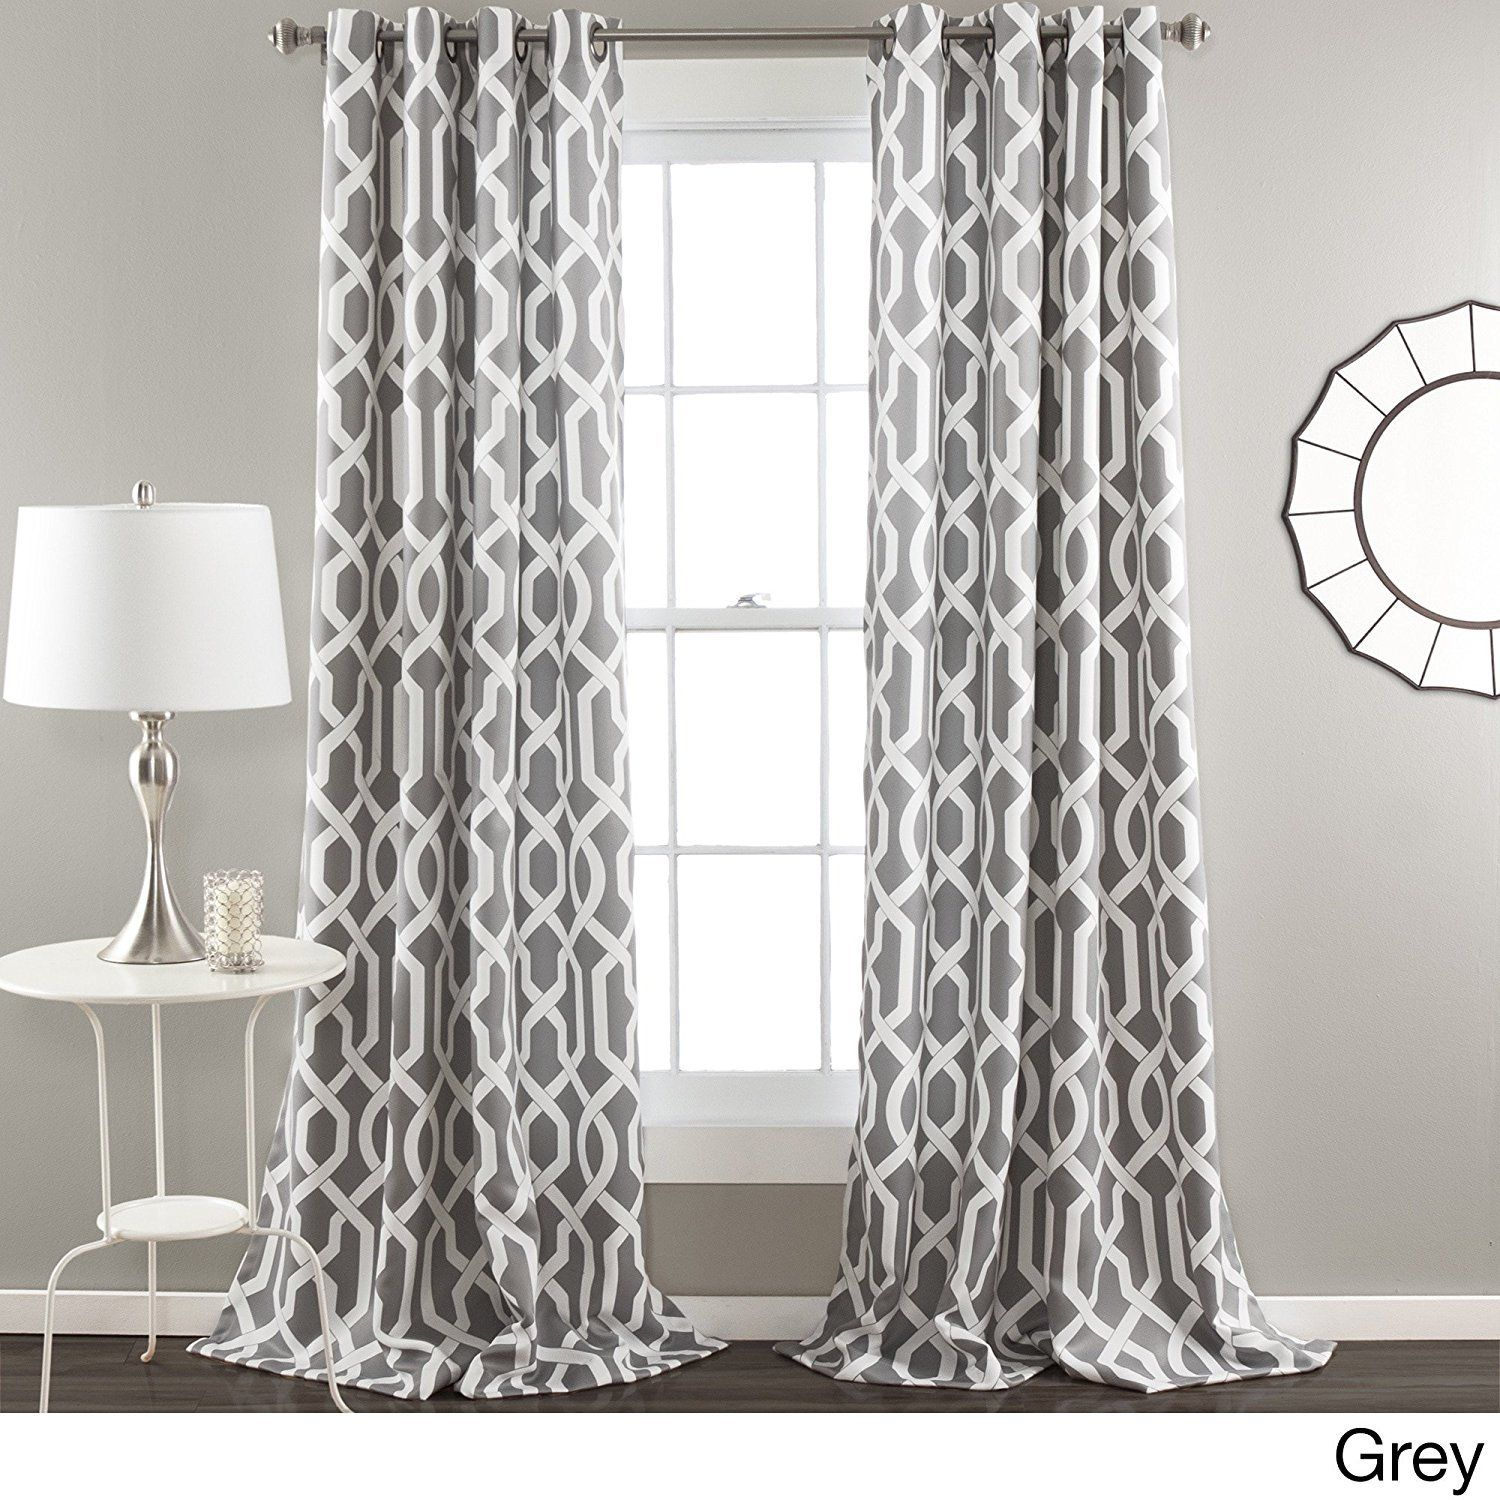 84 Inch Silver Grey White Moroccan Curtains Panel Pair Set Gray Color Drapes Medallion Geometric Trellis Pattern Window White Paneling Panel Curtains Curtains